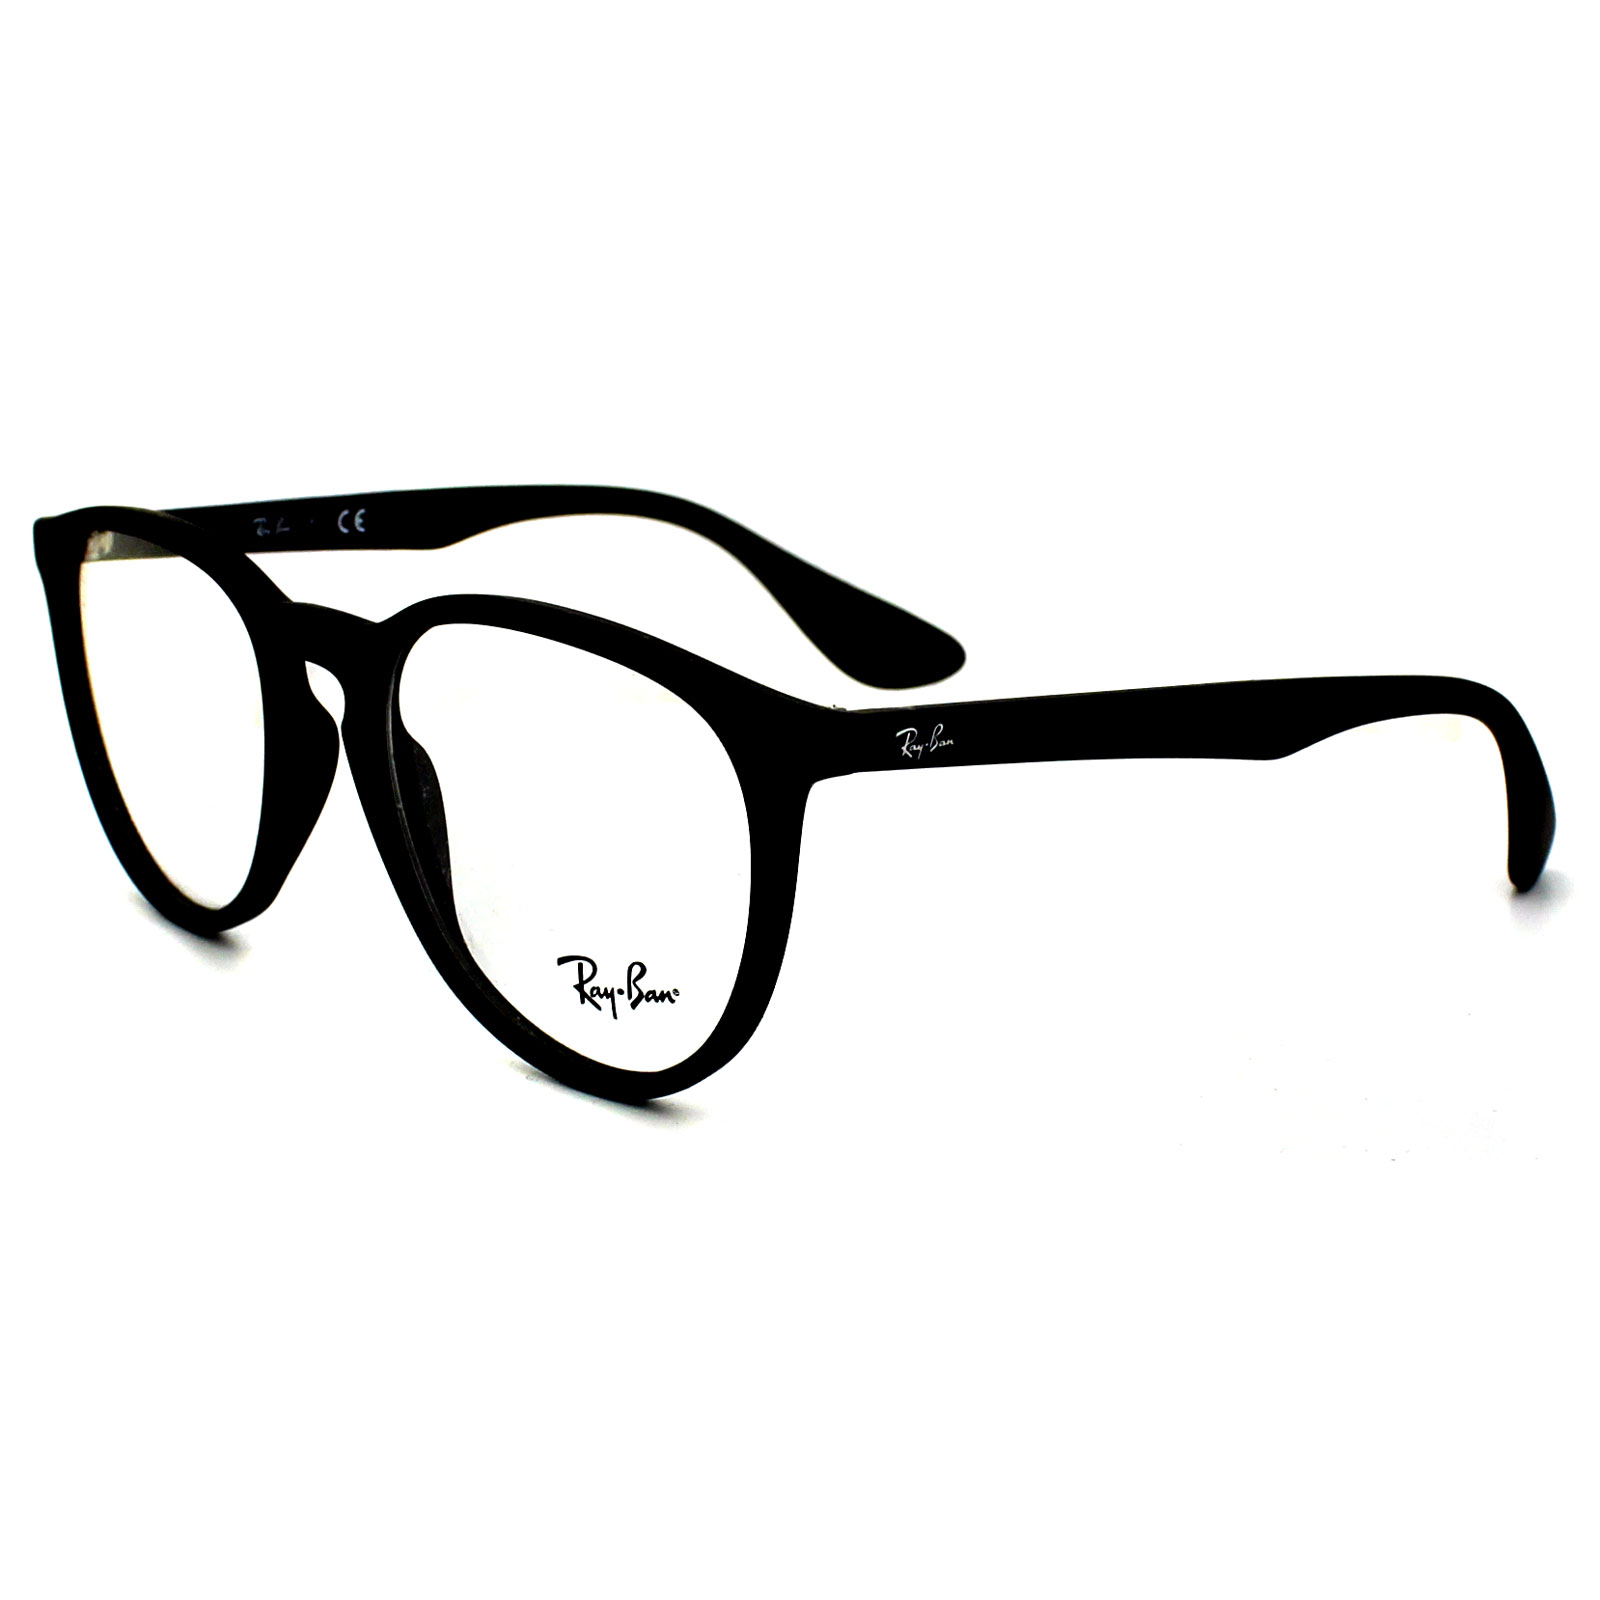 Cheap Raybans Glasses With Lens Online Uk